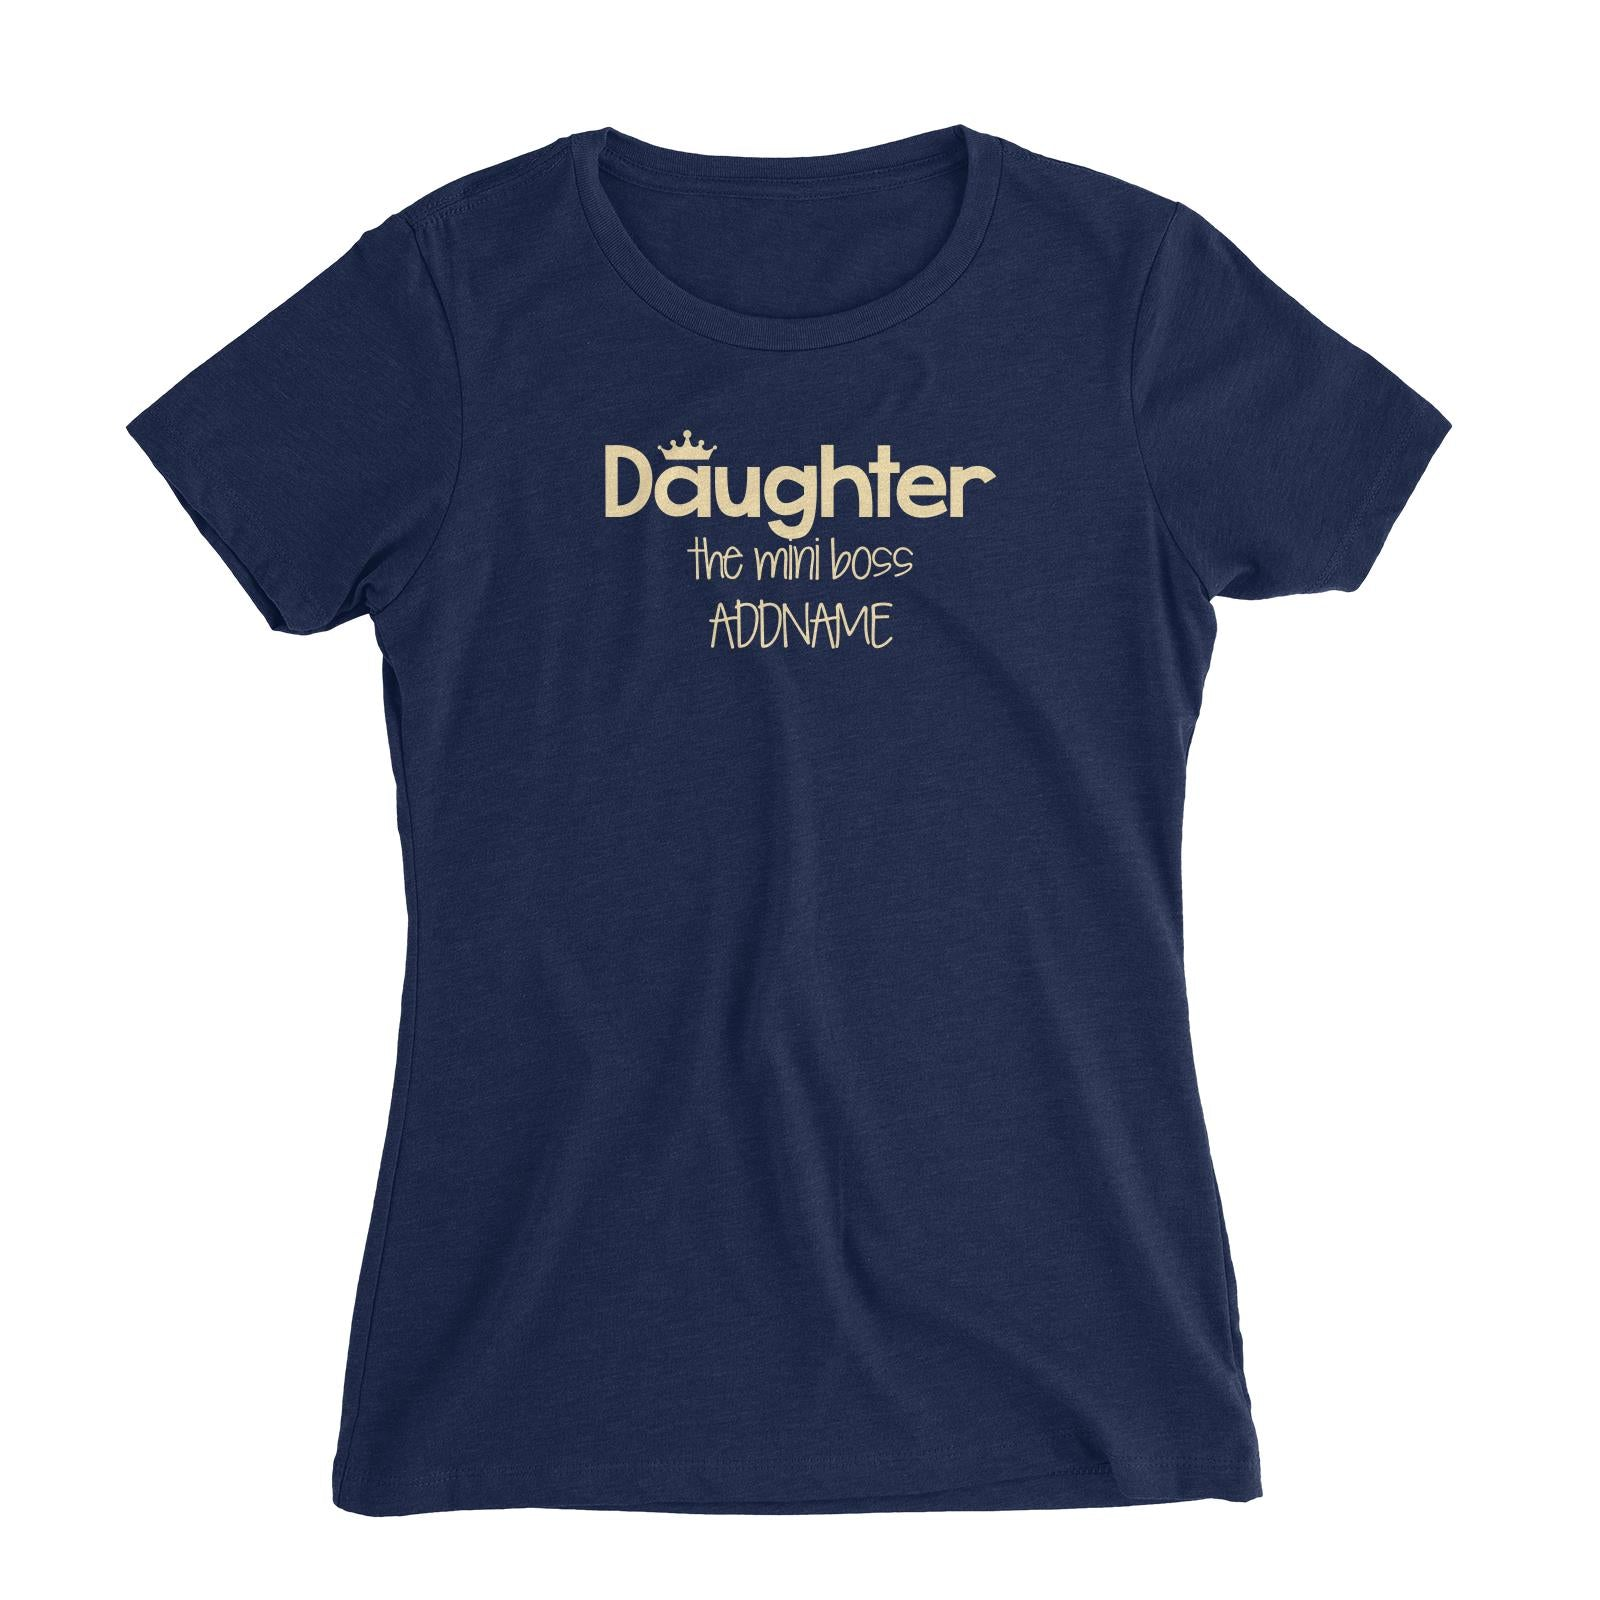 Daughter with Tiara The Mini Boss Women's Slim Fit T-Shirt